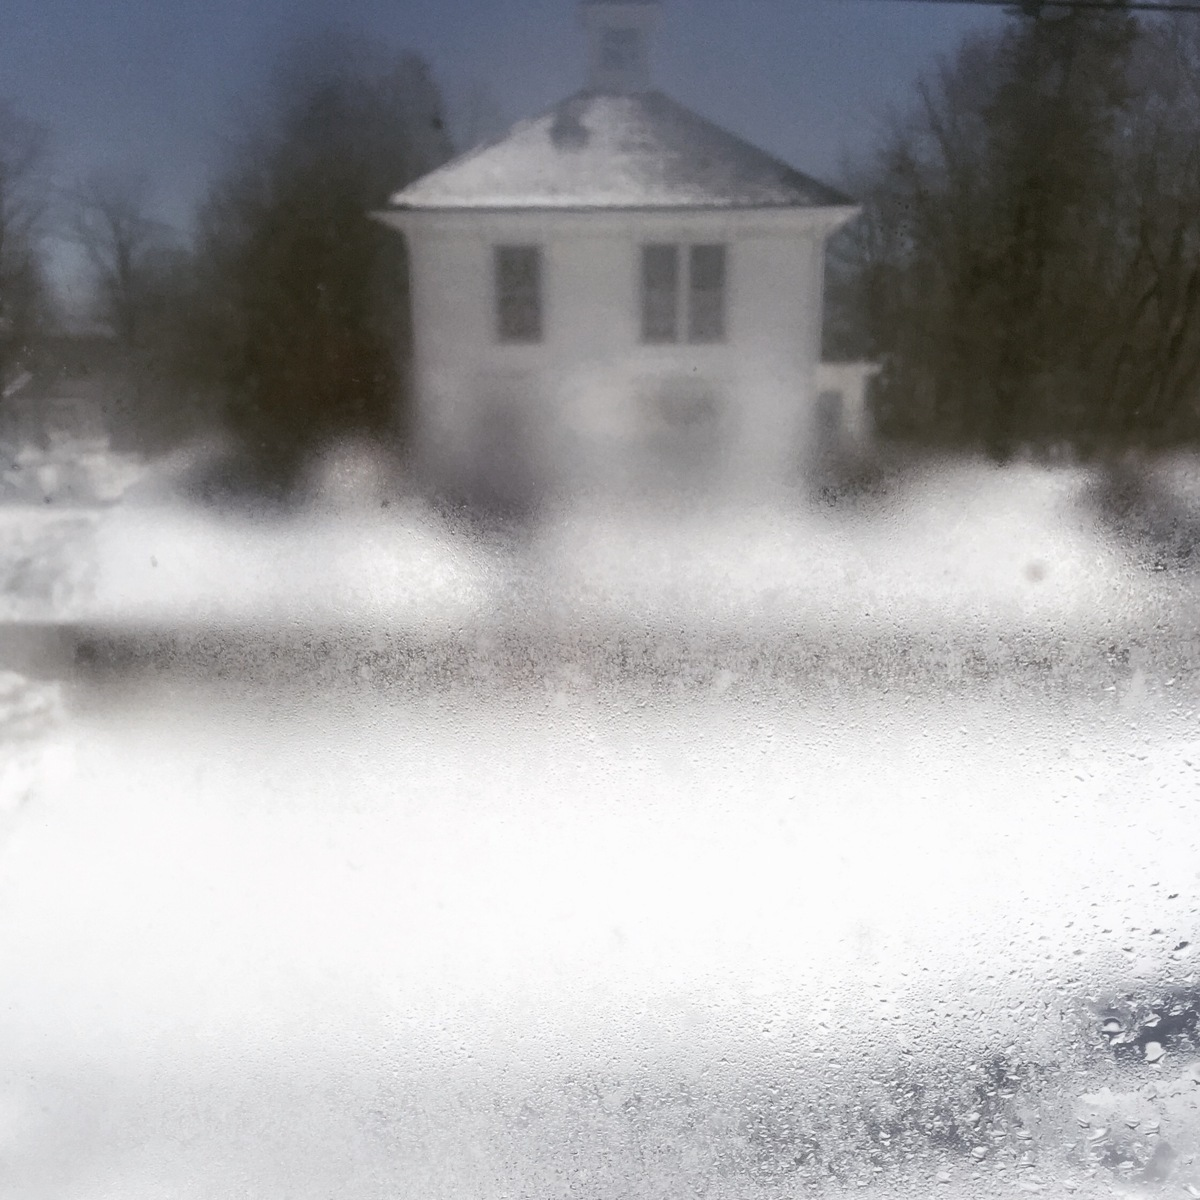 3.22 Midday wet snow white house (large view)